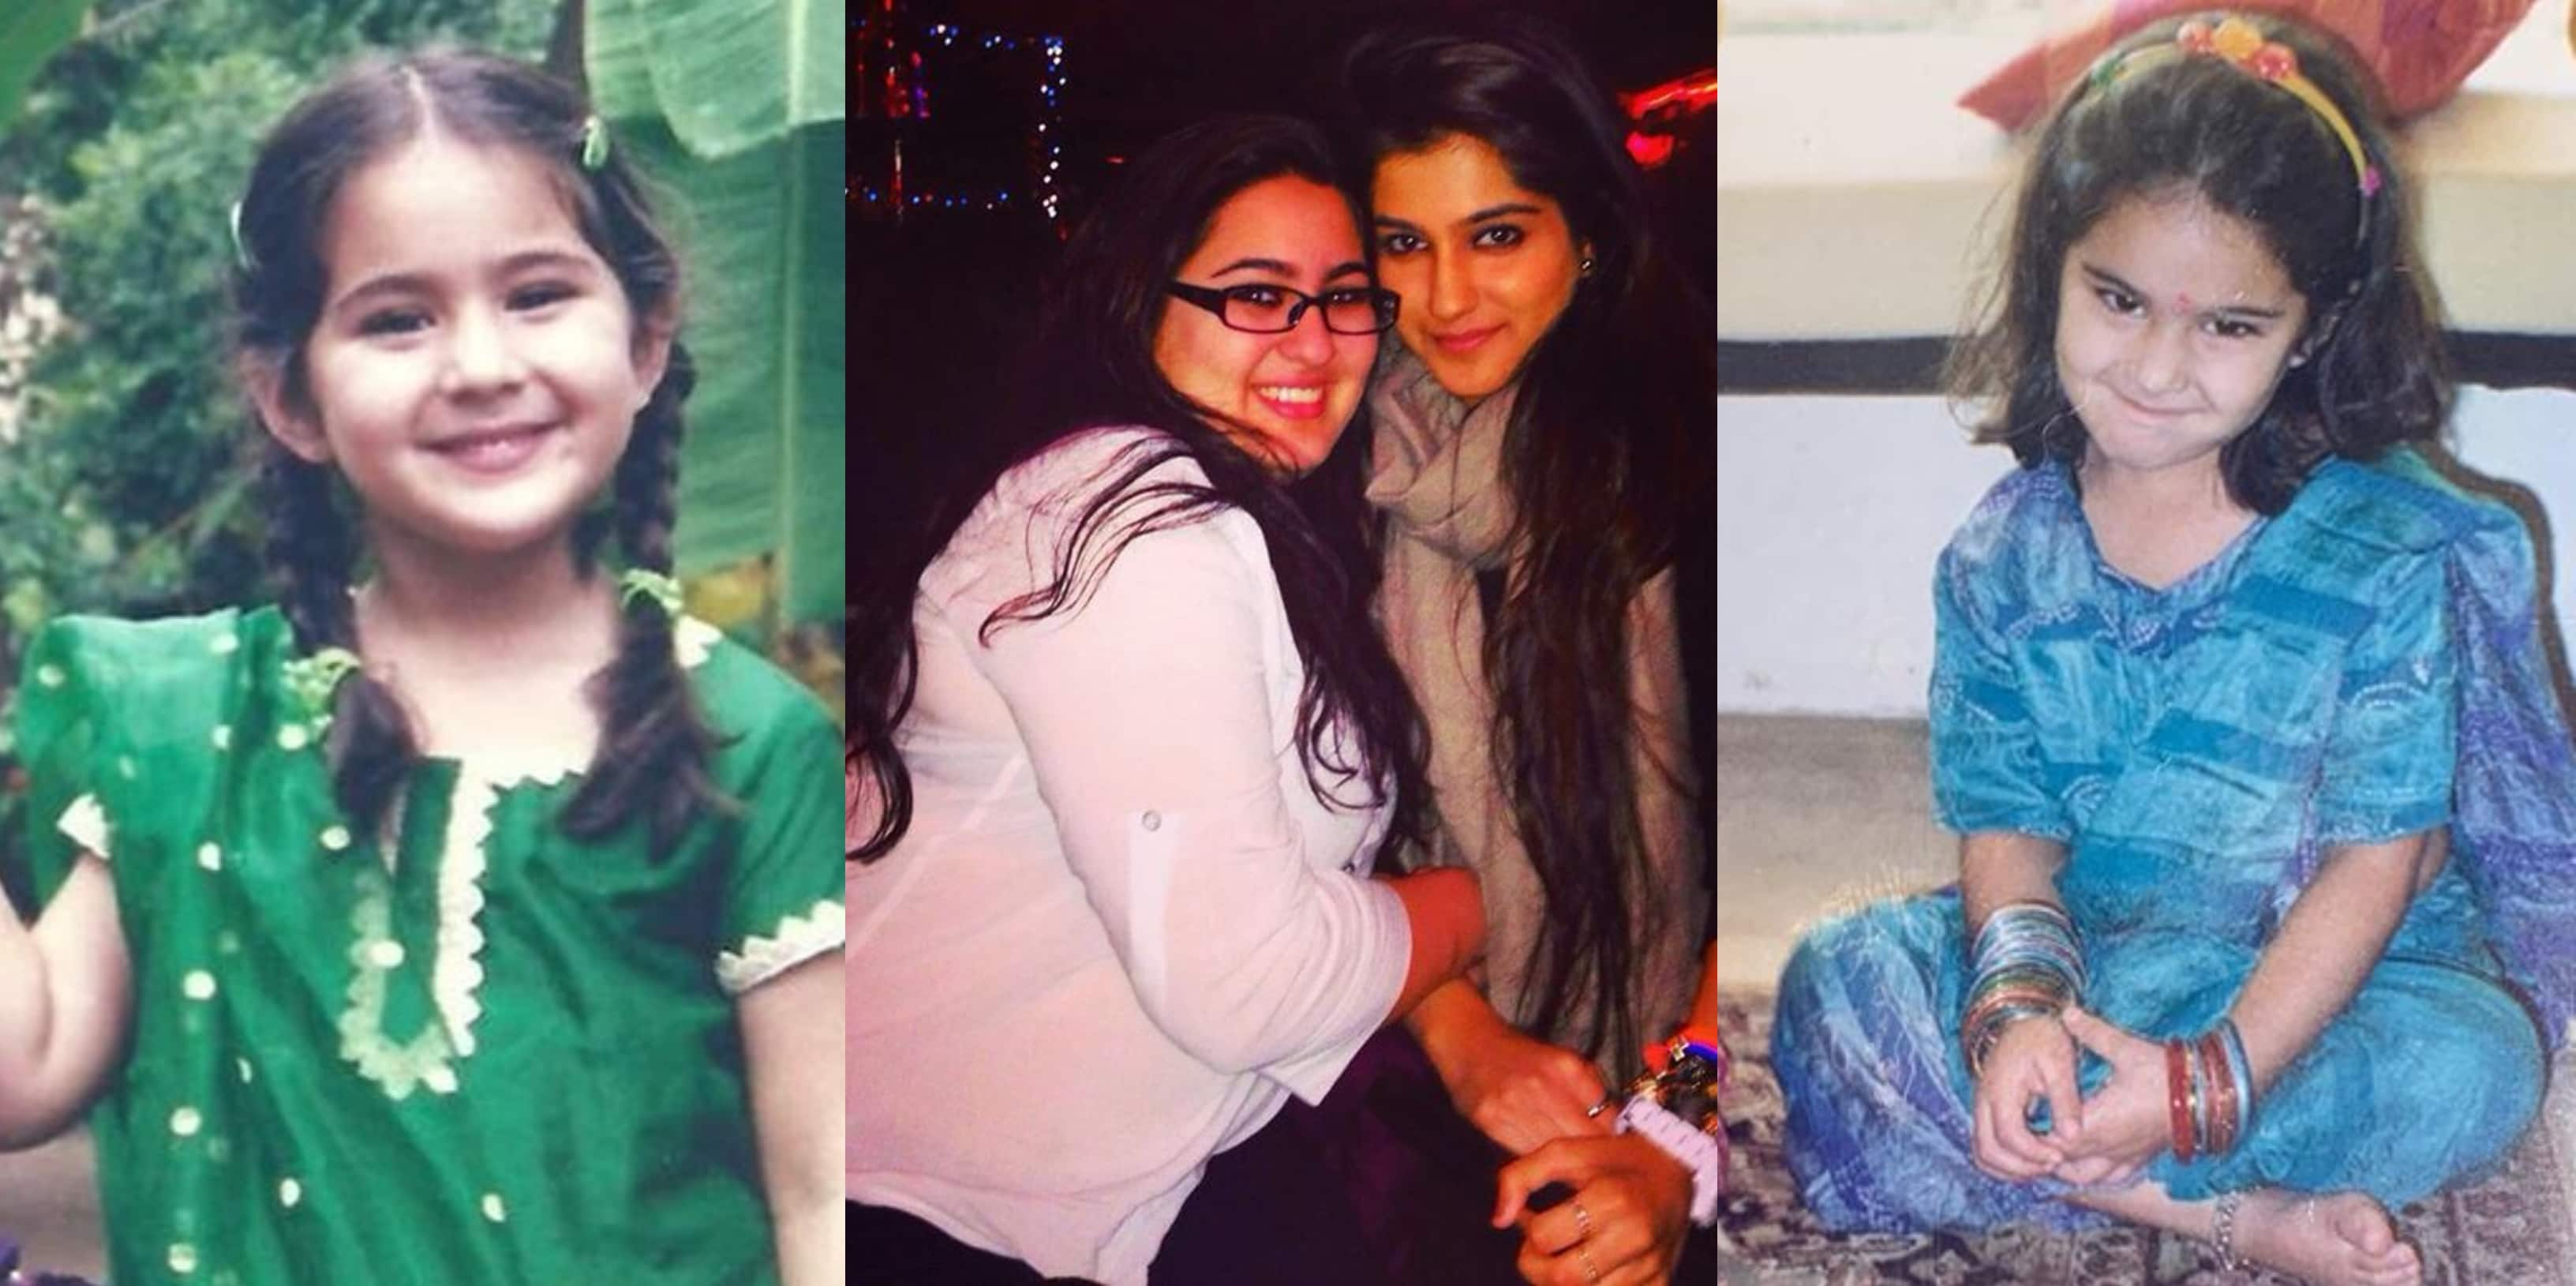 Sara Ali Khan Shares Throwback Pictures In Appreciation Post For Friends, Her Million Dollar Smile Will Make Your Day!